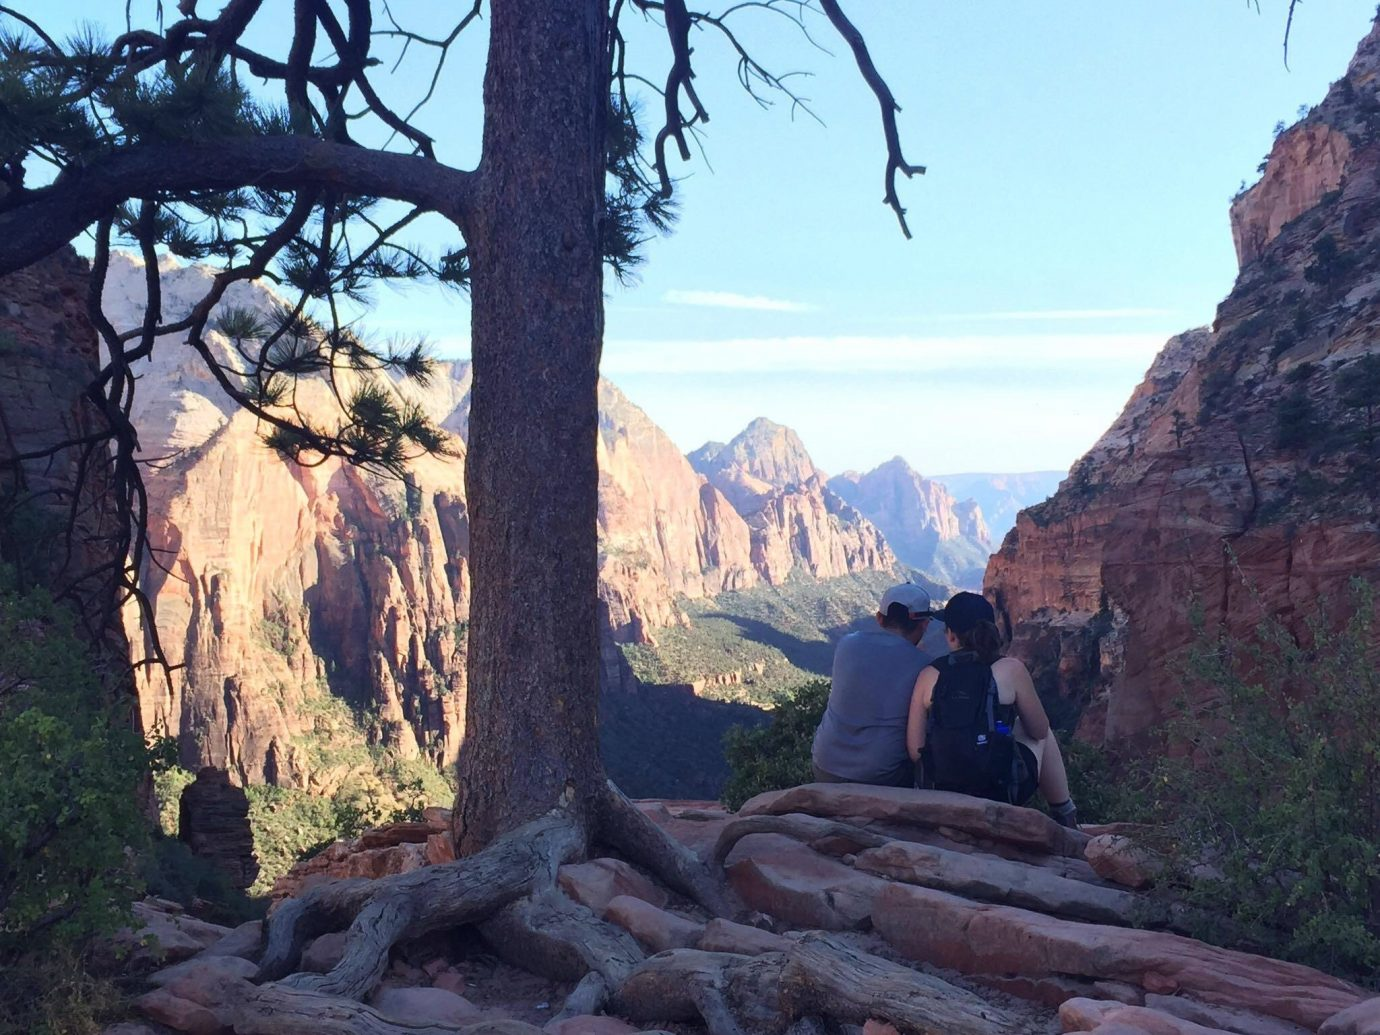 Trip Ideas tree outdoor sky Nature mountain valley canyon wilderness landform rock trail Adventure park geology formation walking national park ridge